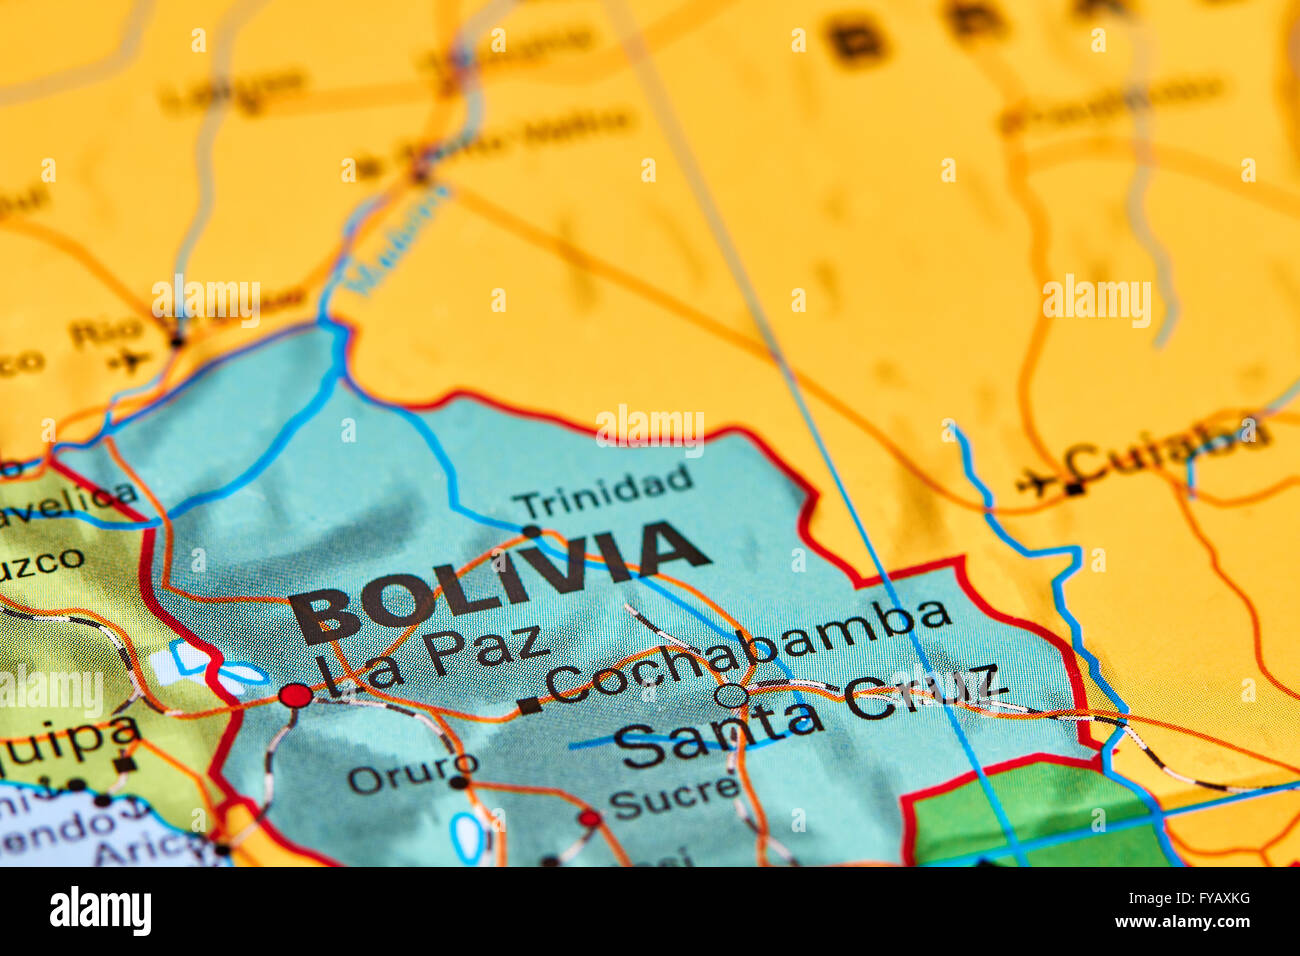 Bolivia country in south america on the world map stock photo bolivia country in south america on the world map gumiabroncs Gallery